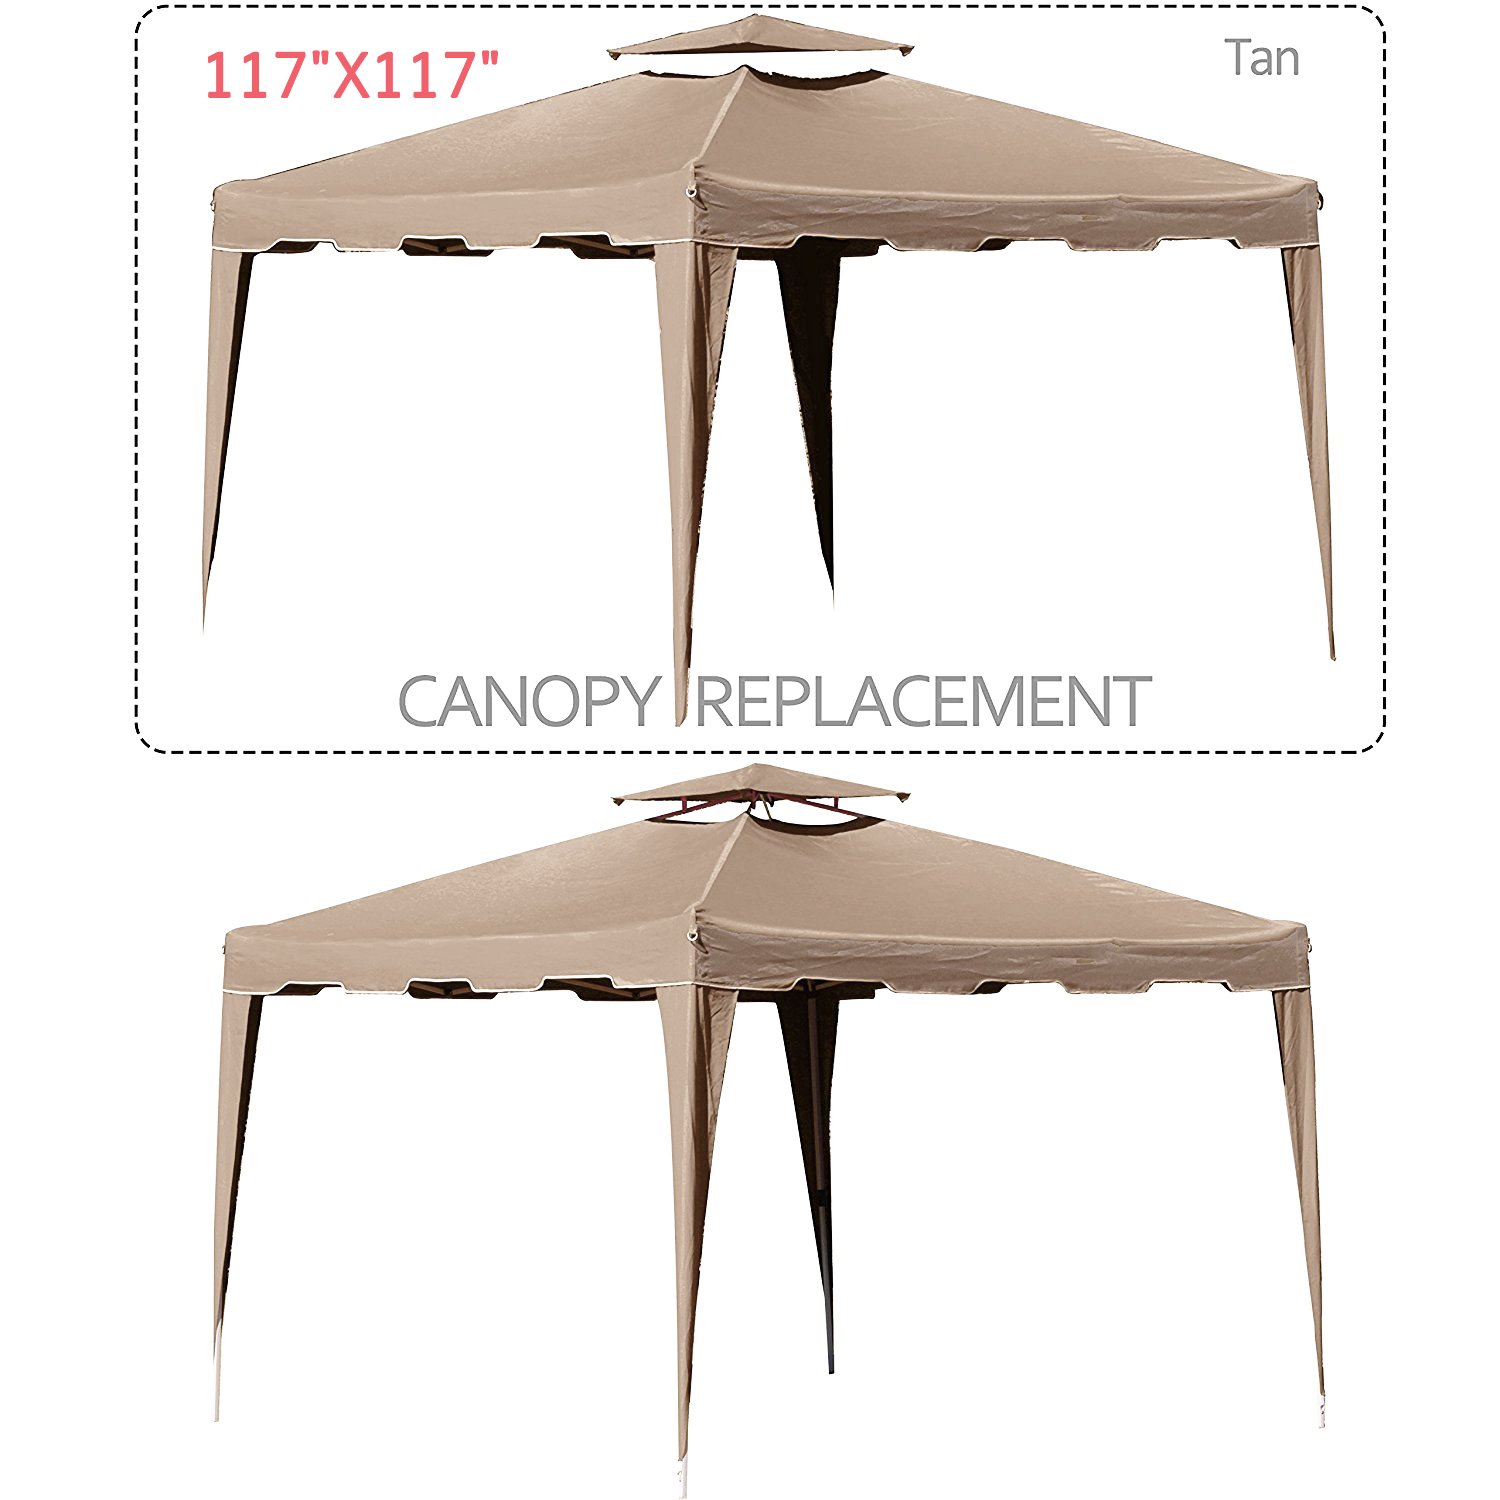 Cloud Mountain 117'' X 117'' Gazebo Replacement Canopy Top Cover, 2-tier UV Protect Resist Light Rain for Outdoor Patio Lawn Sun Shade Tent, Tan (Only Replacement Cover)